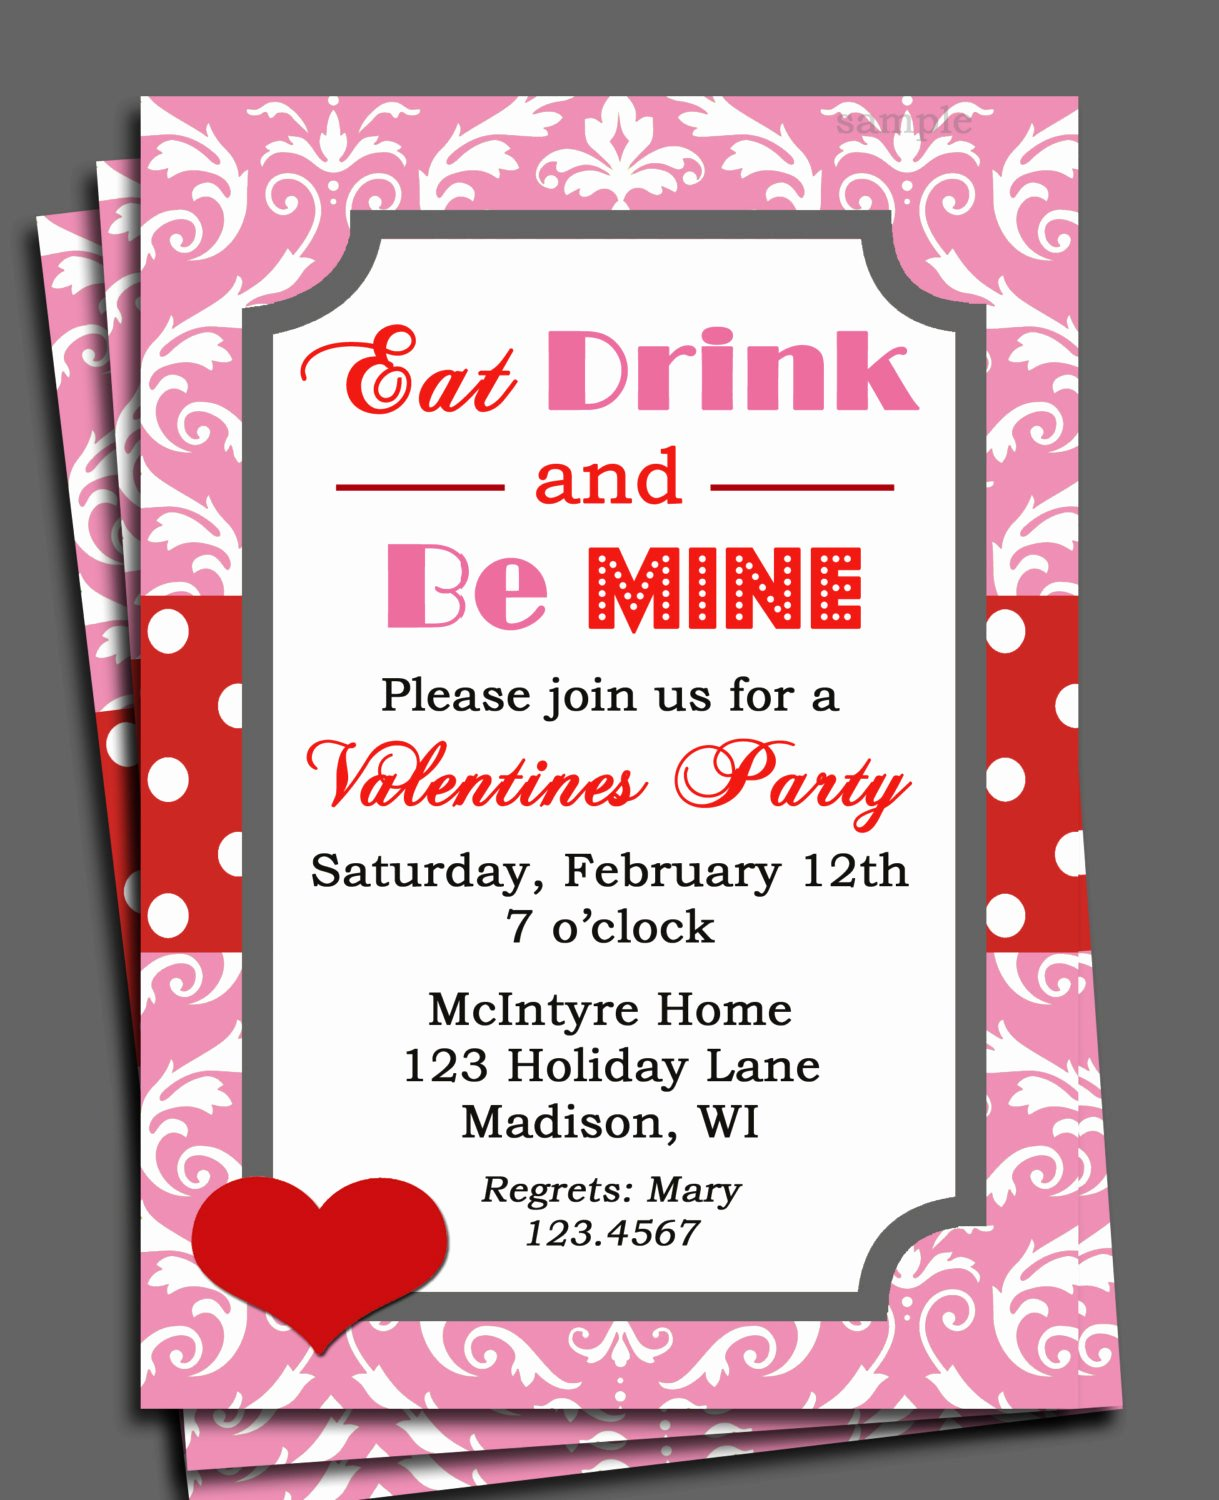 Office Potluck Invitation Wording Samples Elegant 28 Valentine's Fice Potluck Invitation